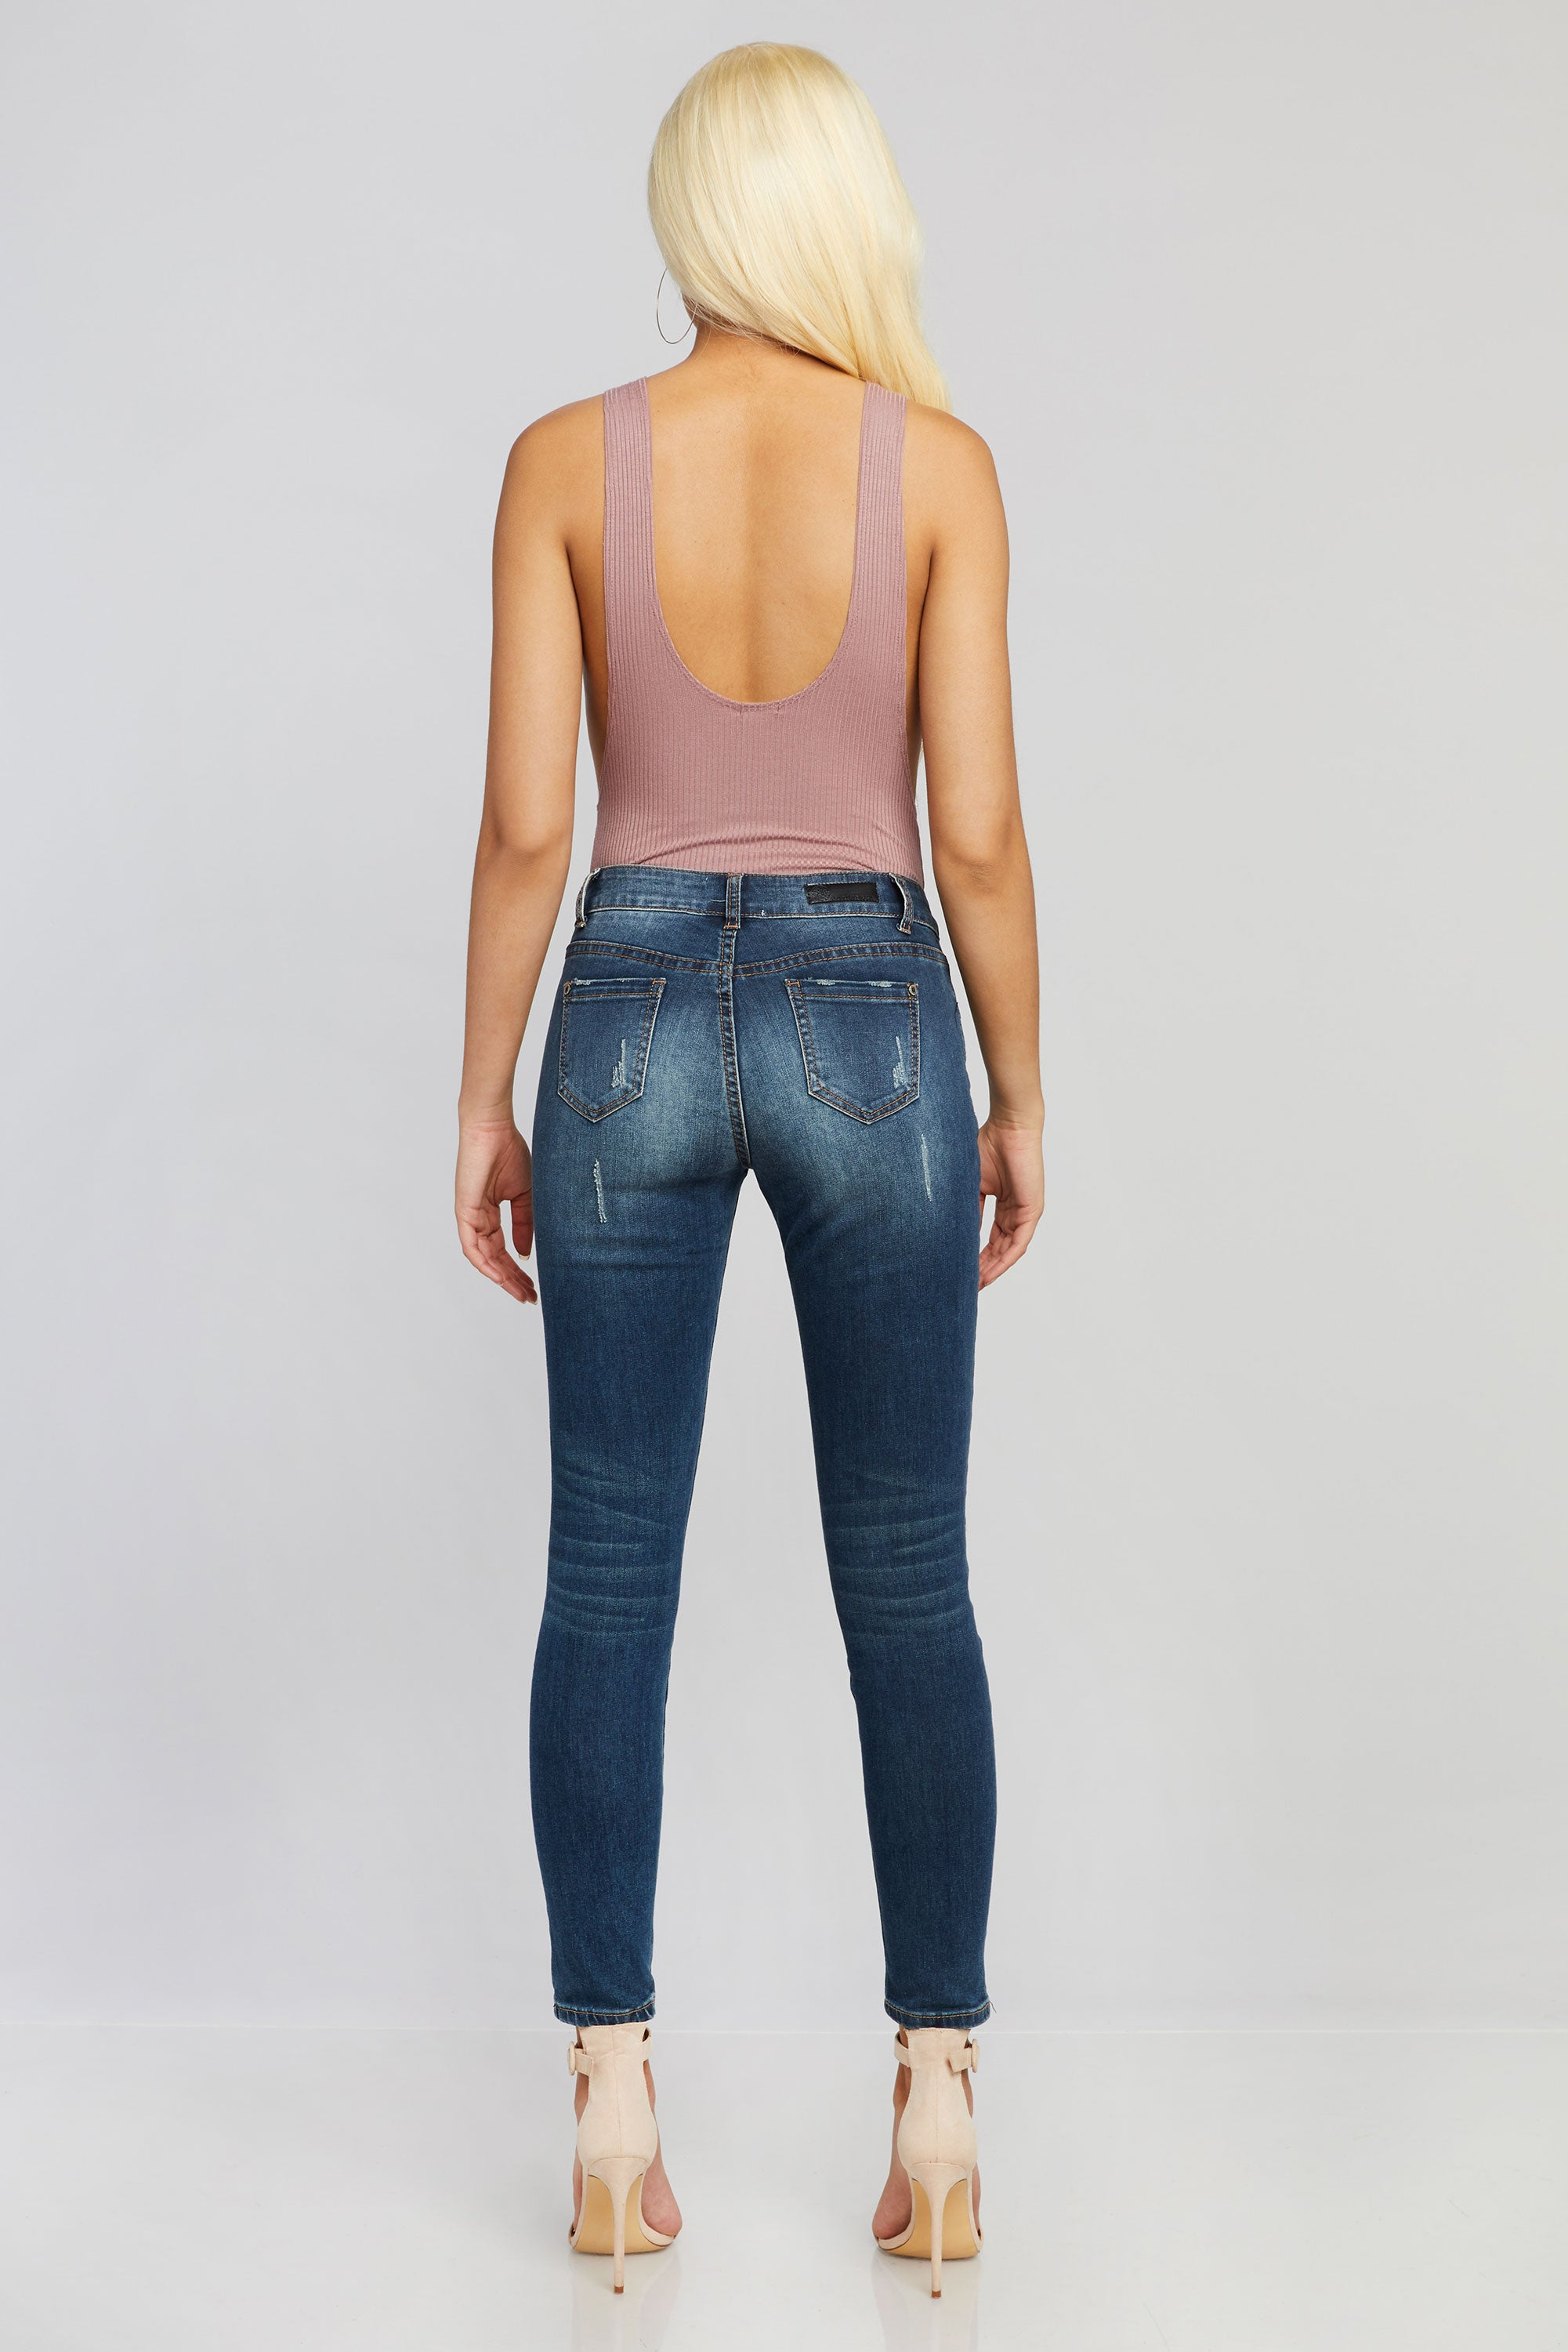 Cydney Distressed Jeans